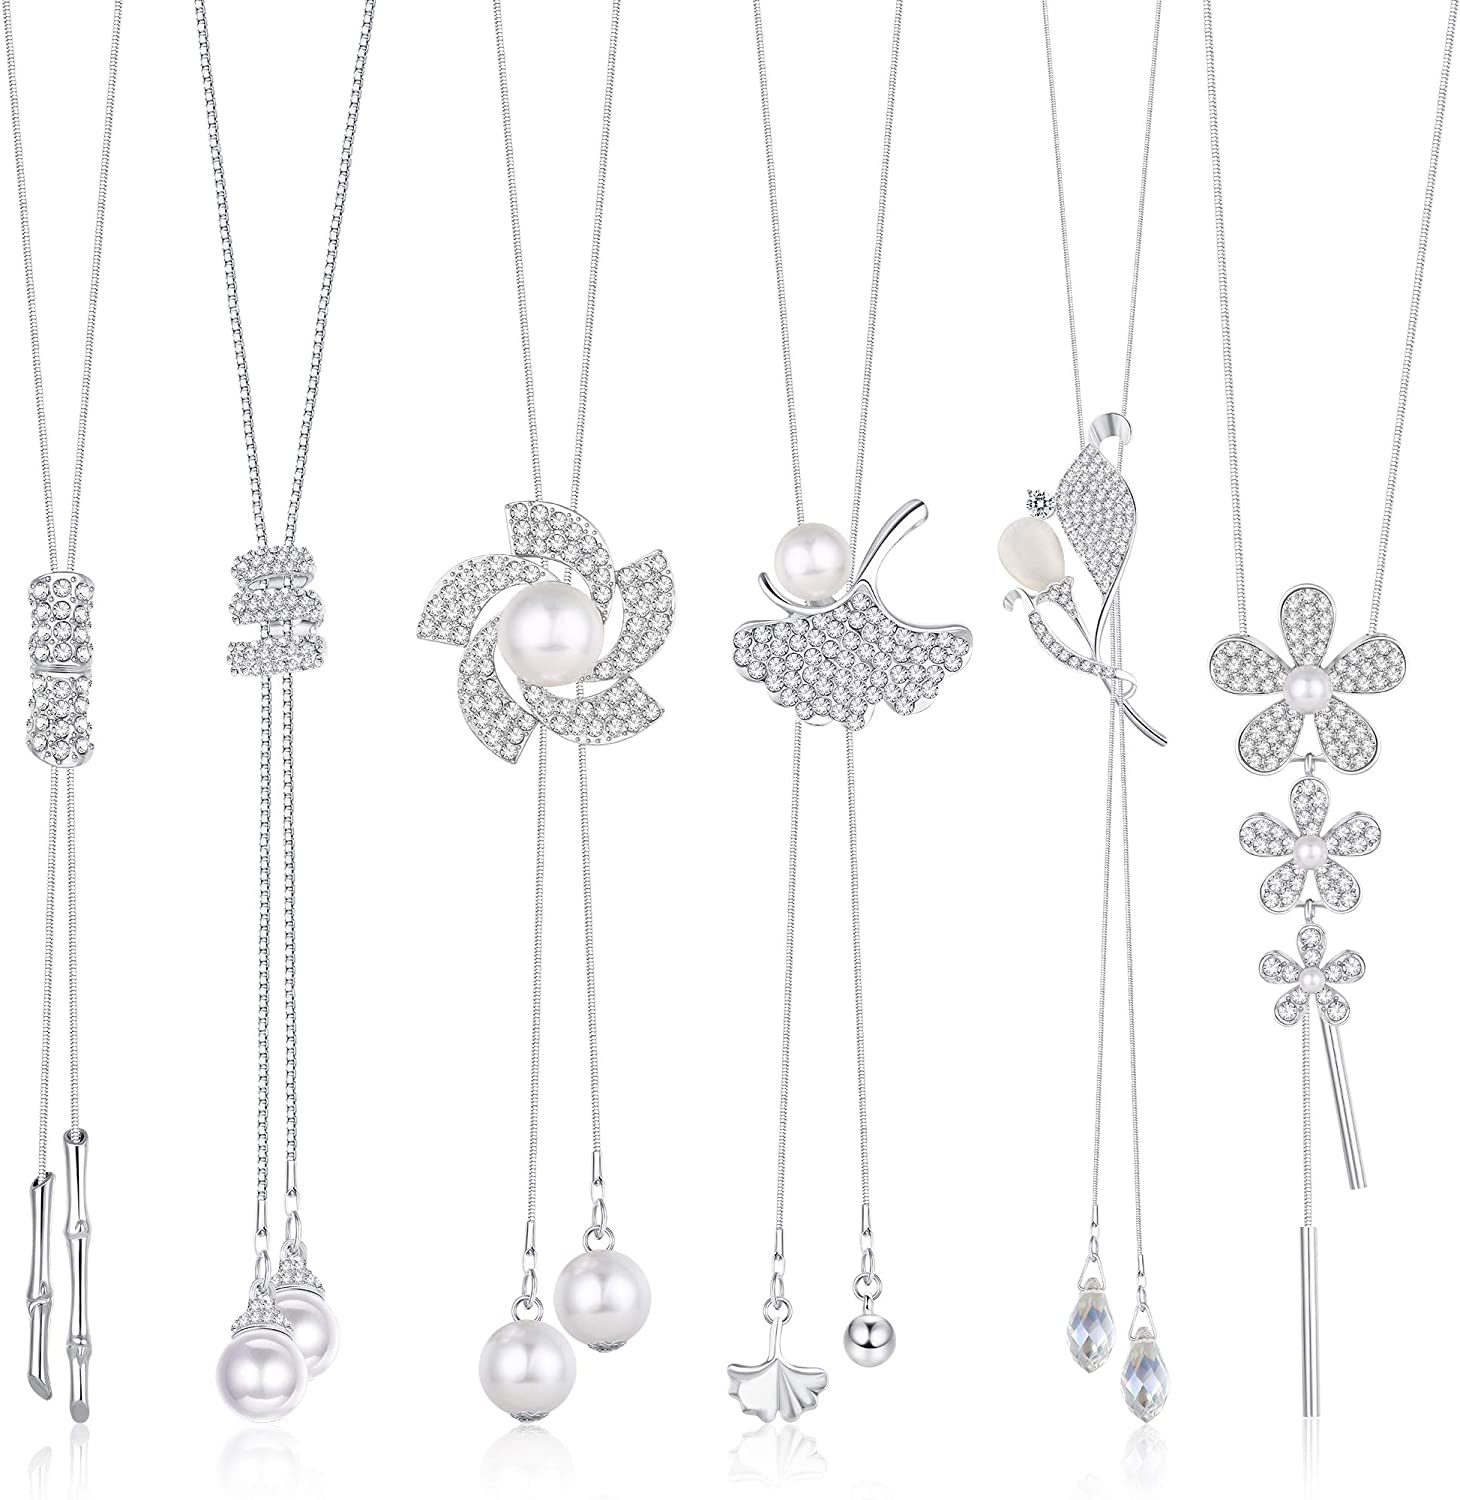 LOYALLOOK 6PCS Crystal Flowers Long Pendant Necklace Set Leaf Tassel Pearl Y Strands Sweater Long Chian Necklace for Women